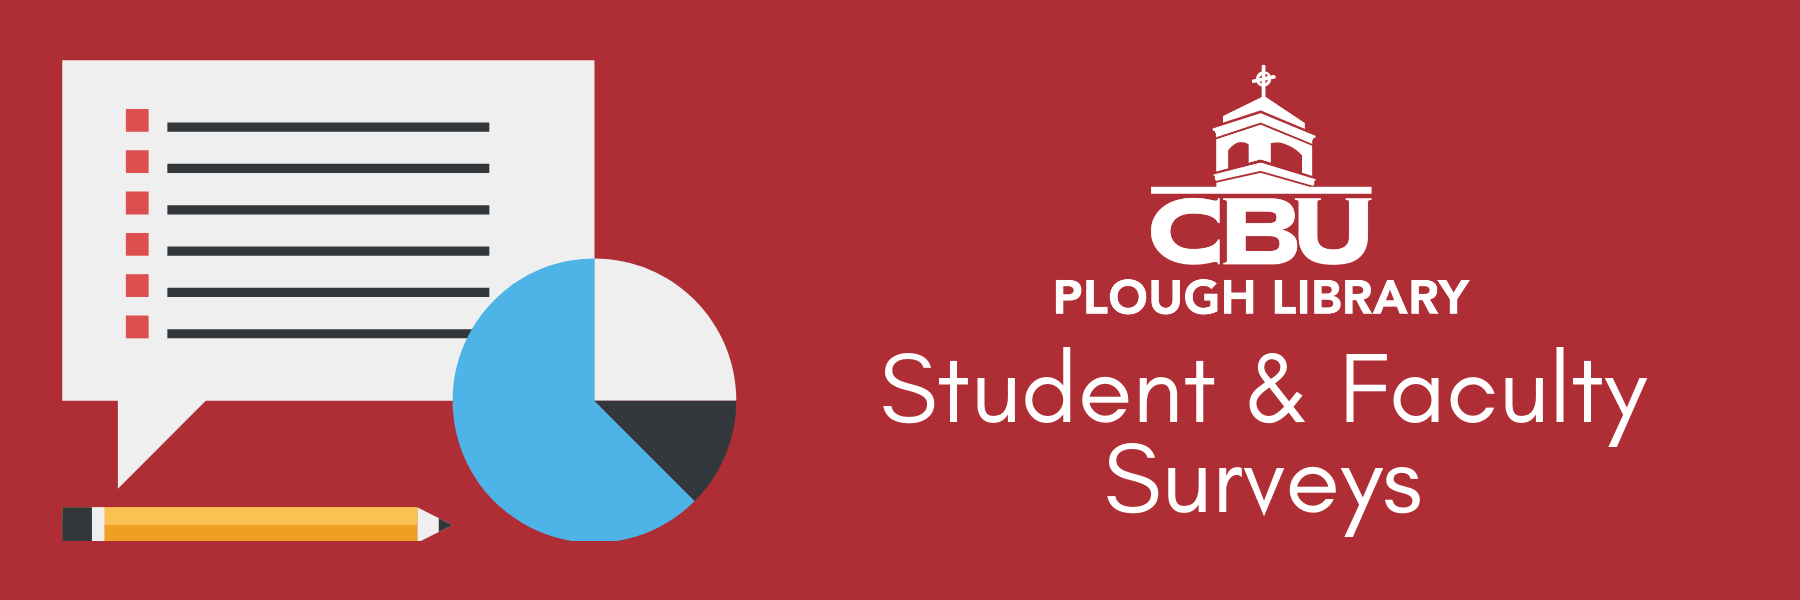 plough library student and faculty surveys